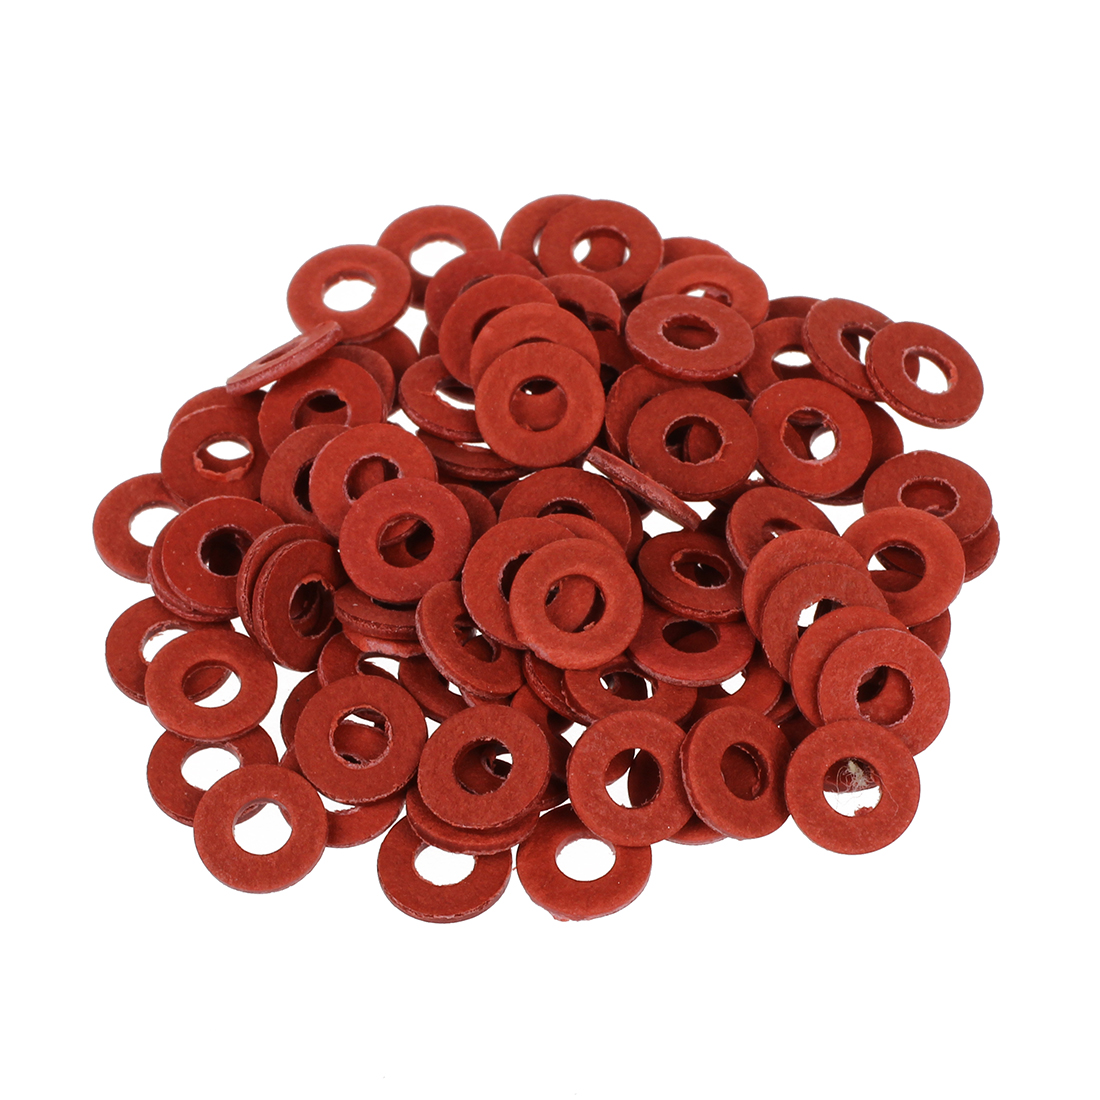 JFBL Hot sale New Hot Sale 100 Pcs Practical Red Motherboard Screw Insulating Fiber Washers hot sale red mini r